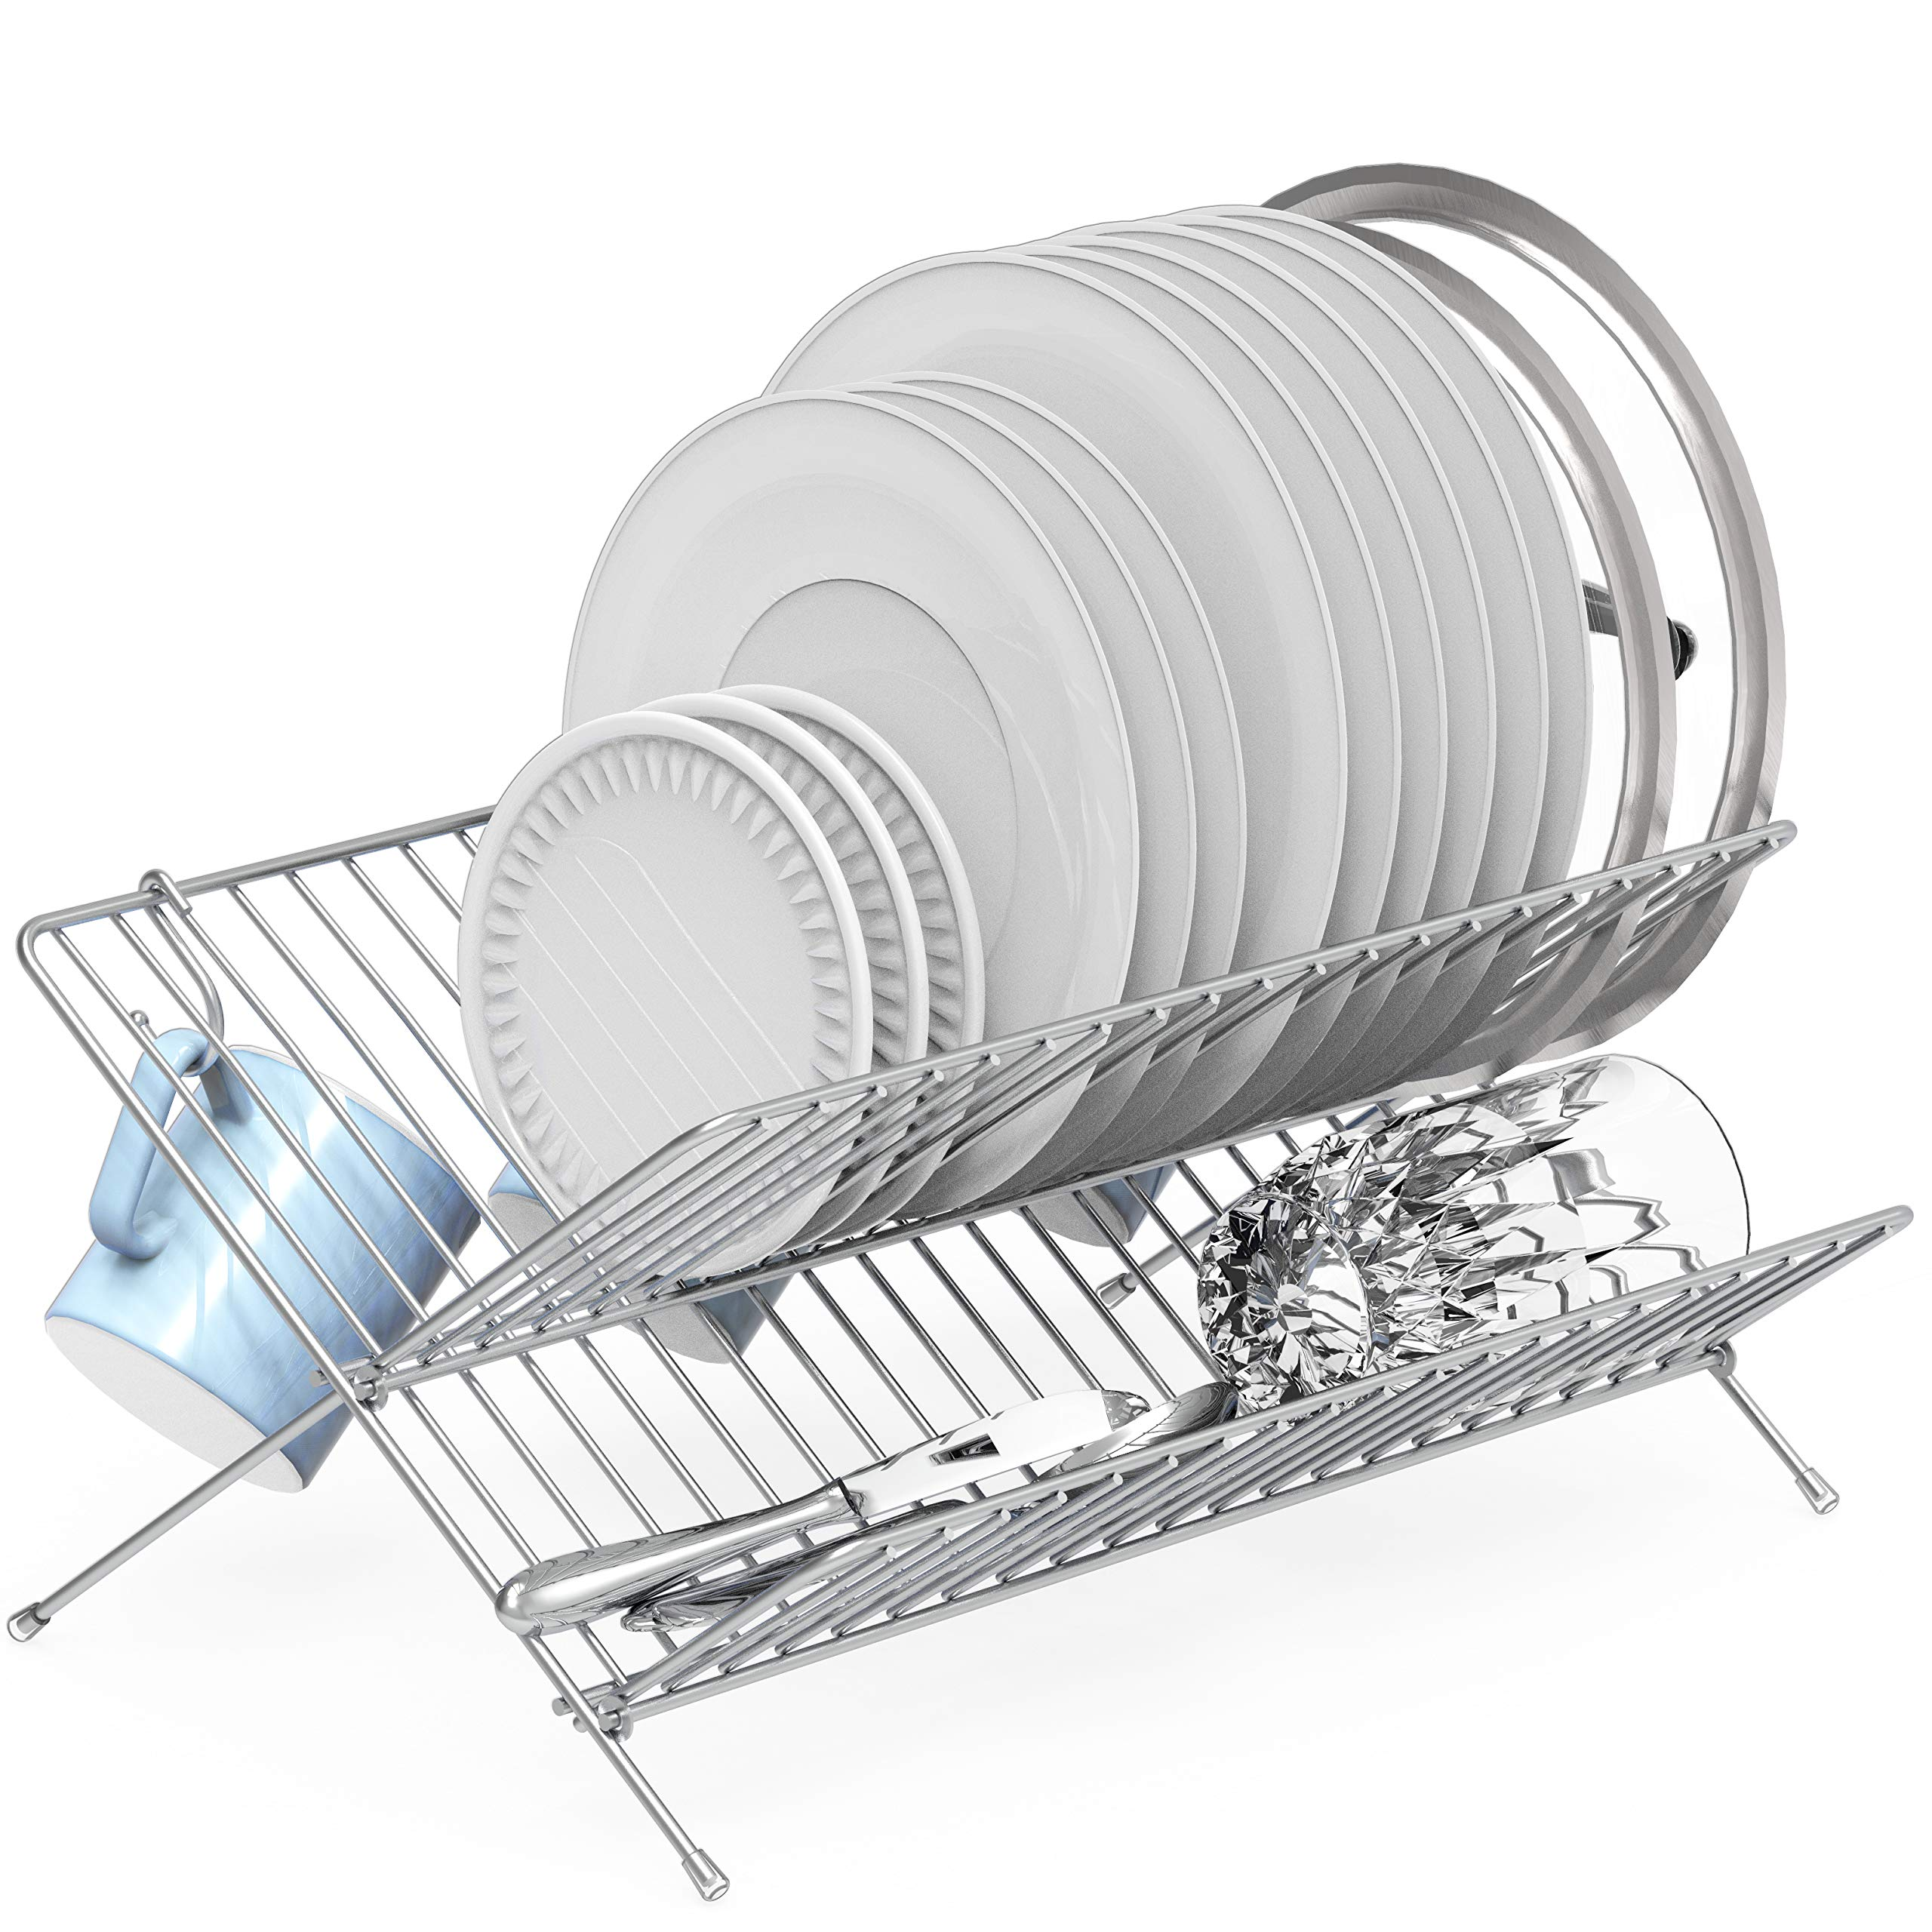 SimpleHouseware Collapsible Dish Drying Chrome